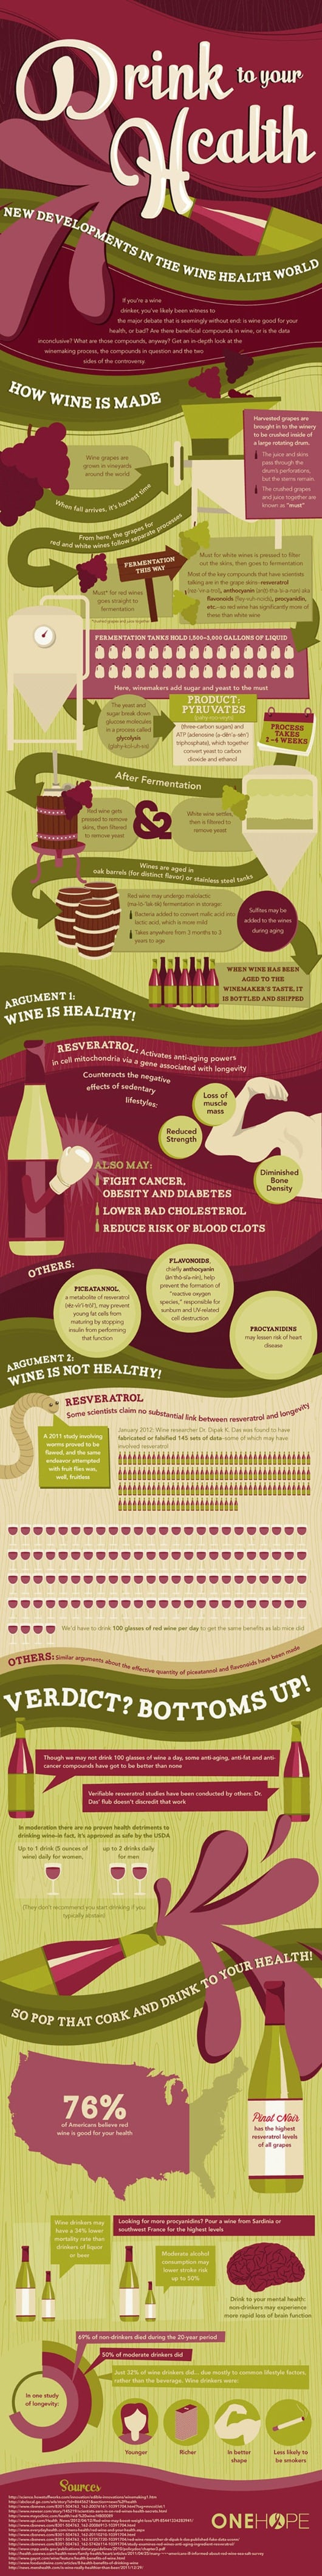 Drink-To-Your-Health-Wine-Infographic-r80